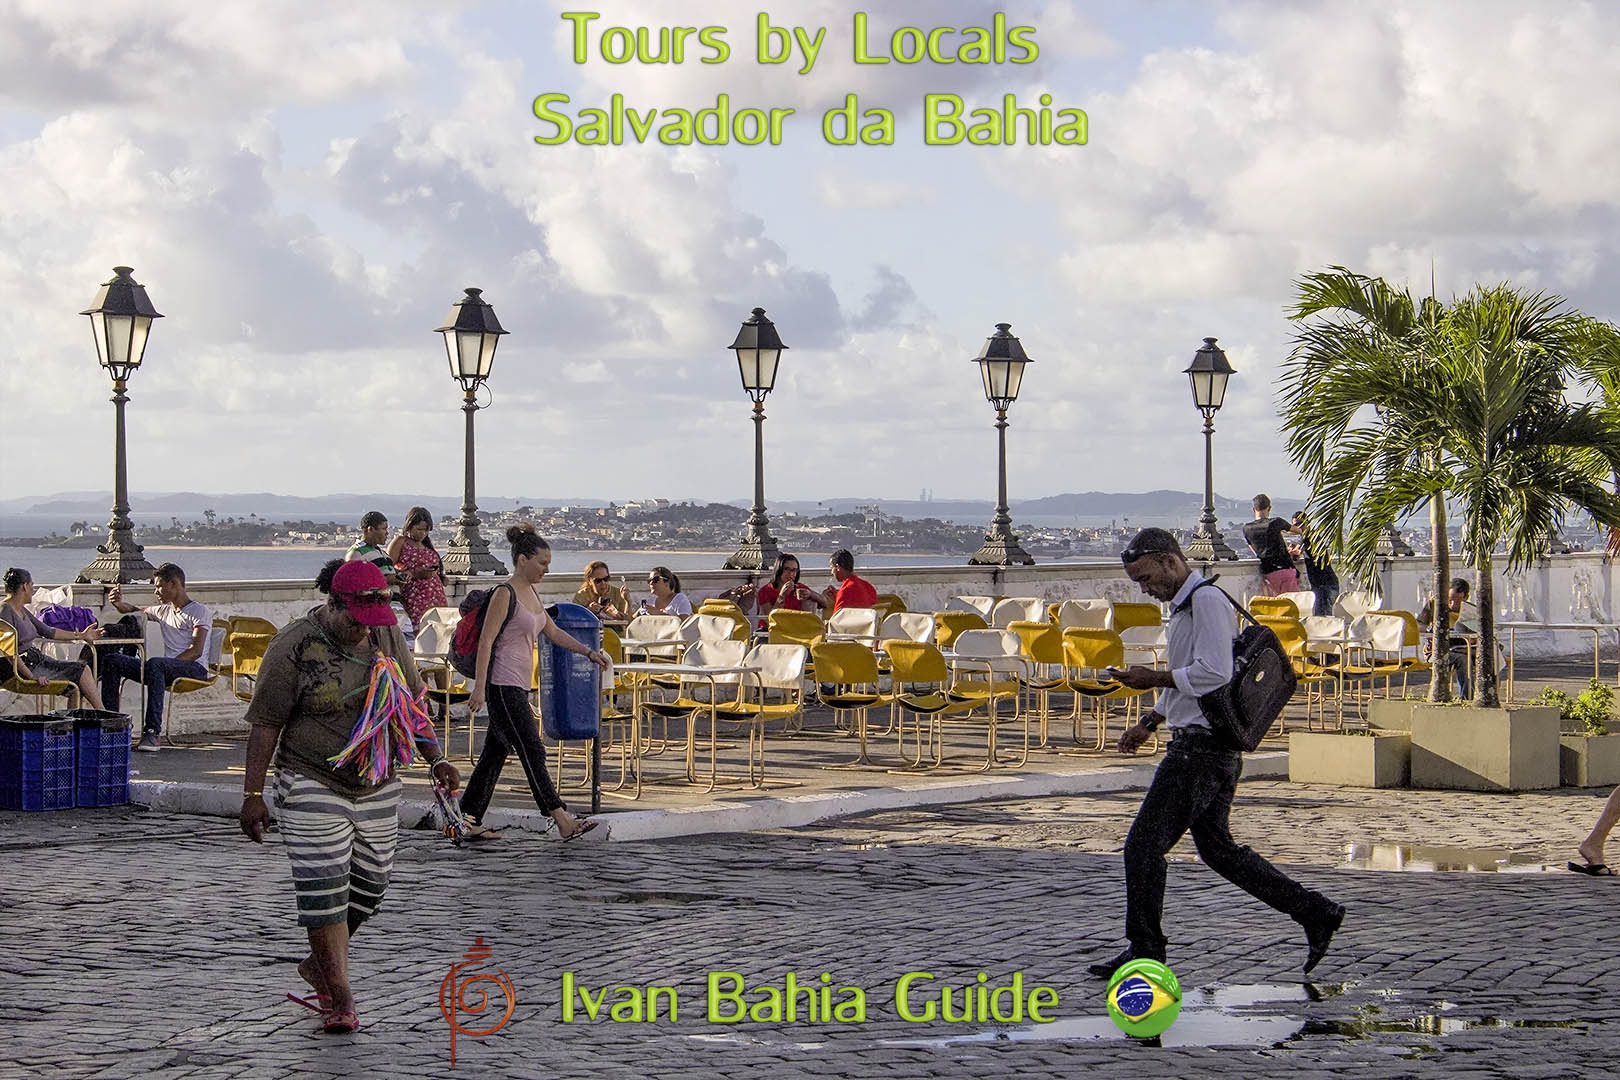 Discover Bahia with Ivan Bahia private tour-guide / travel agency, for the best experience in Salvador, Chapada Diamantina National Park and Bahia /NE-Brazil